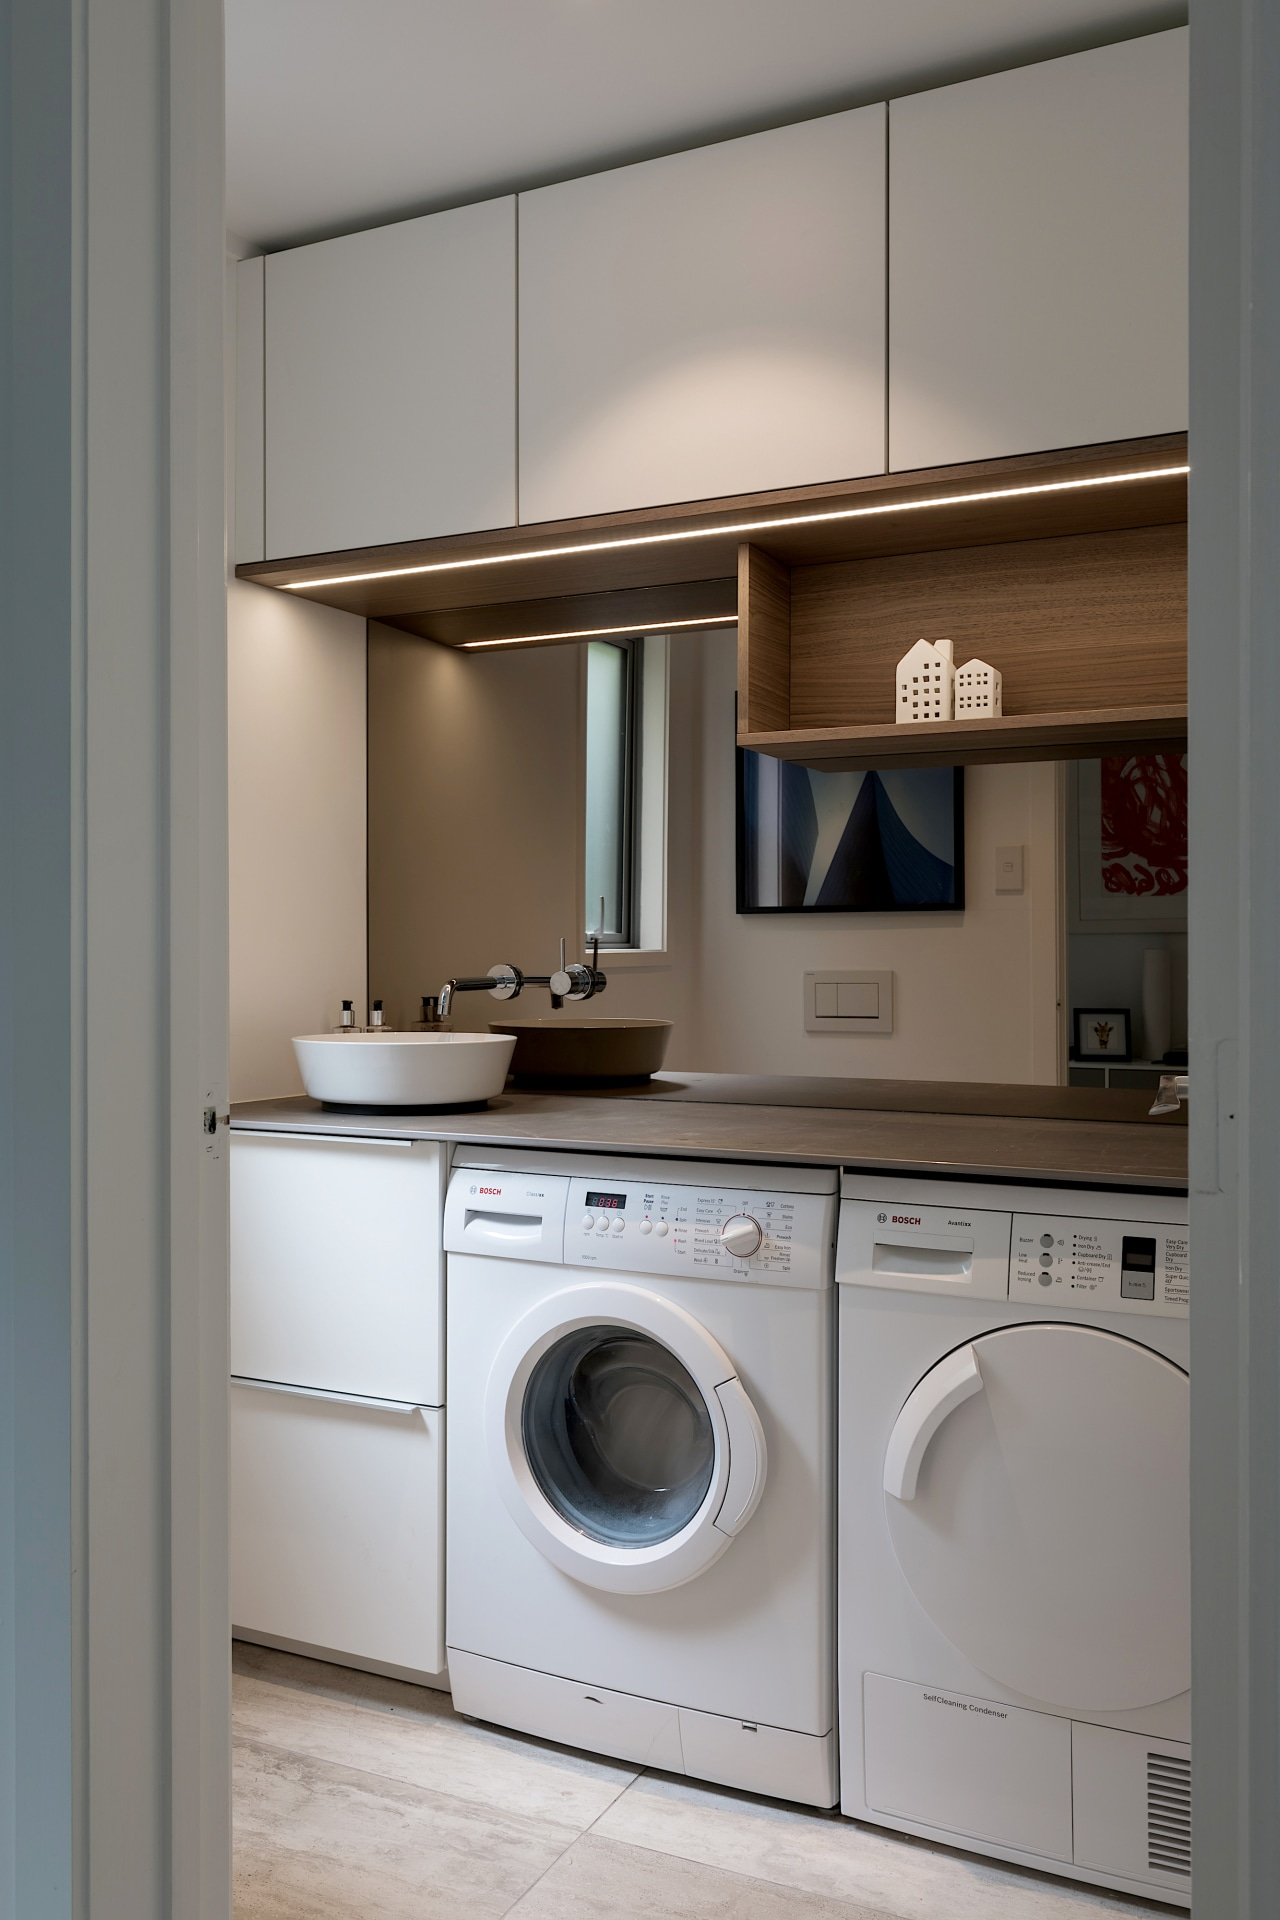 Designer Lara Farmillo designed the laundry in this architecture, building, cabinetry, clothes dryer, countertop, cupboard, floor, furniture, home appliance, house, interior design, kitchen, laundry, laundry room, major appliance, material property, property, room, washing machine, gray